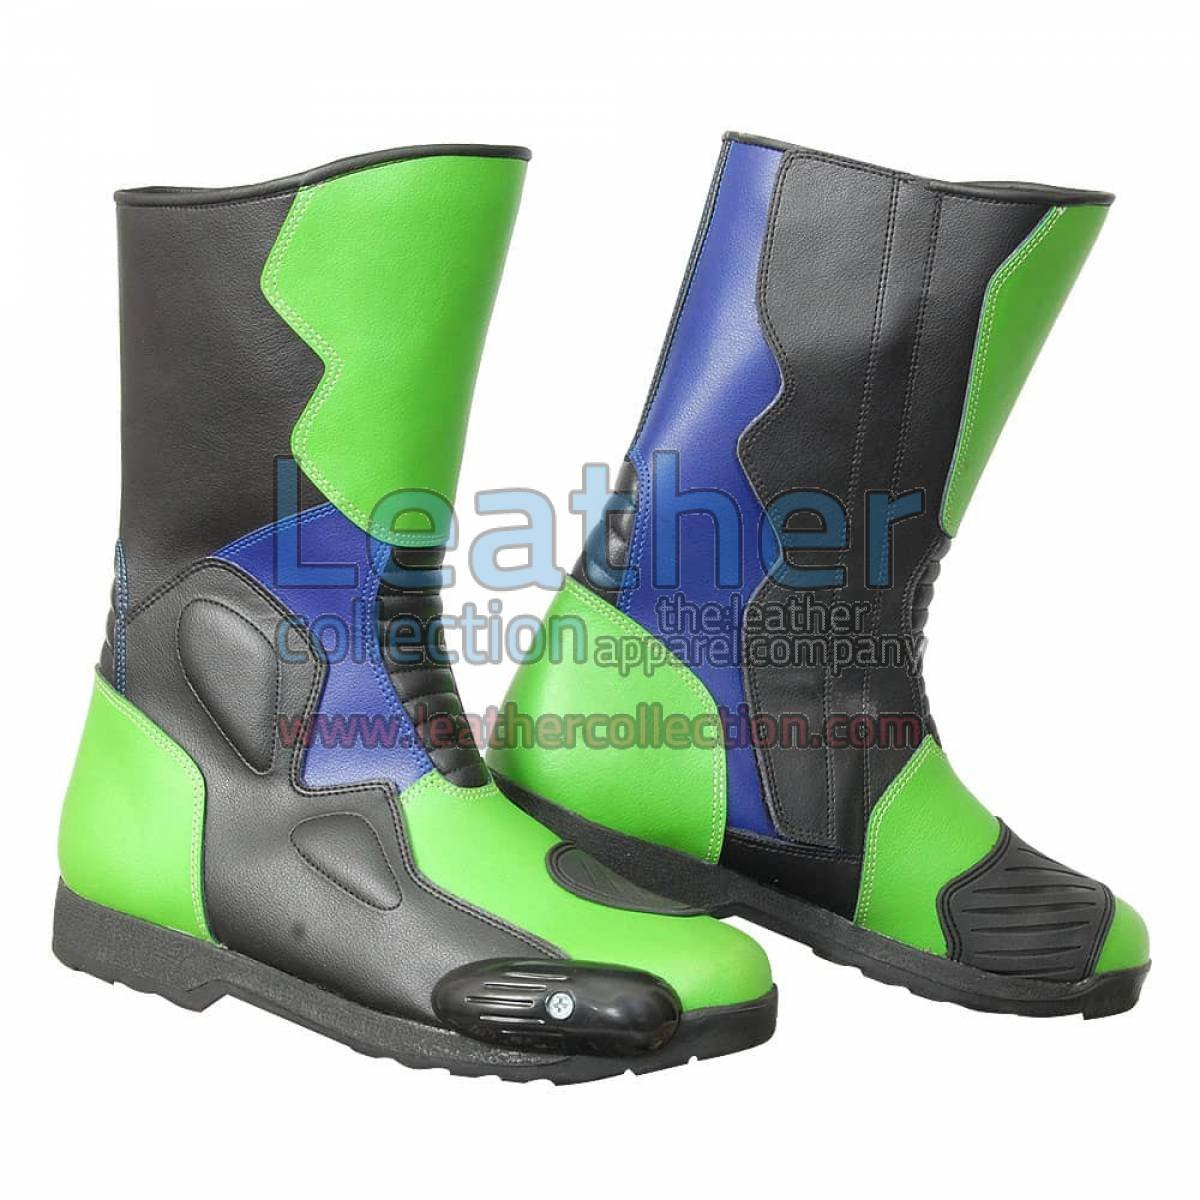 Speed Riding Boots